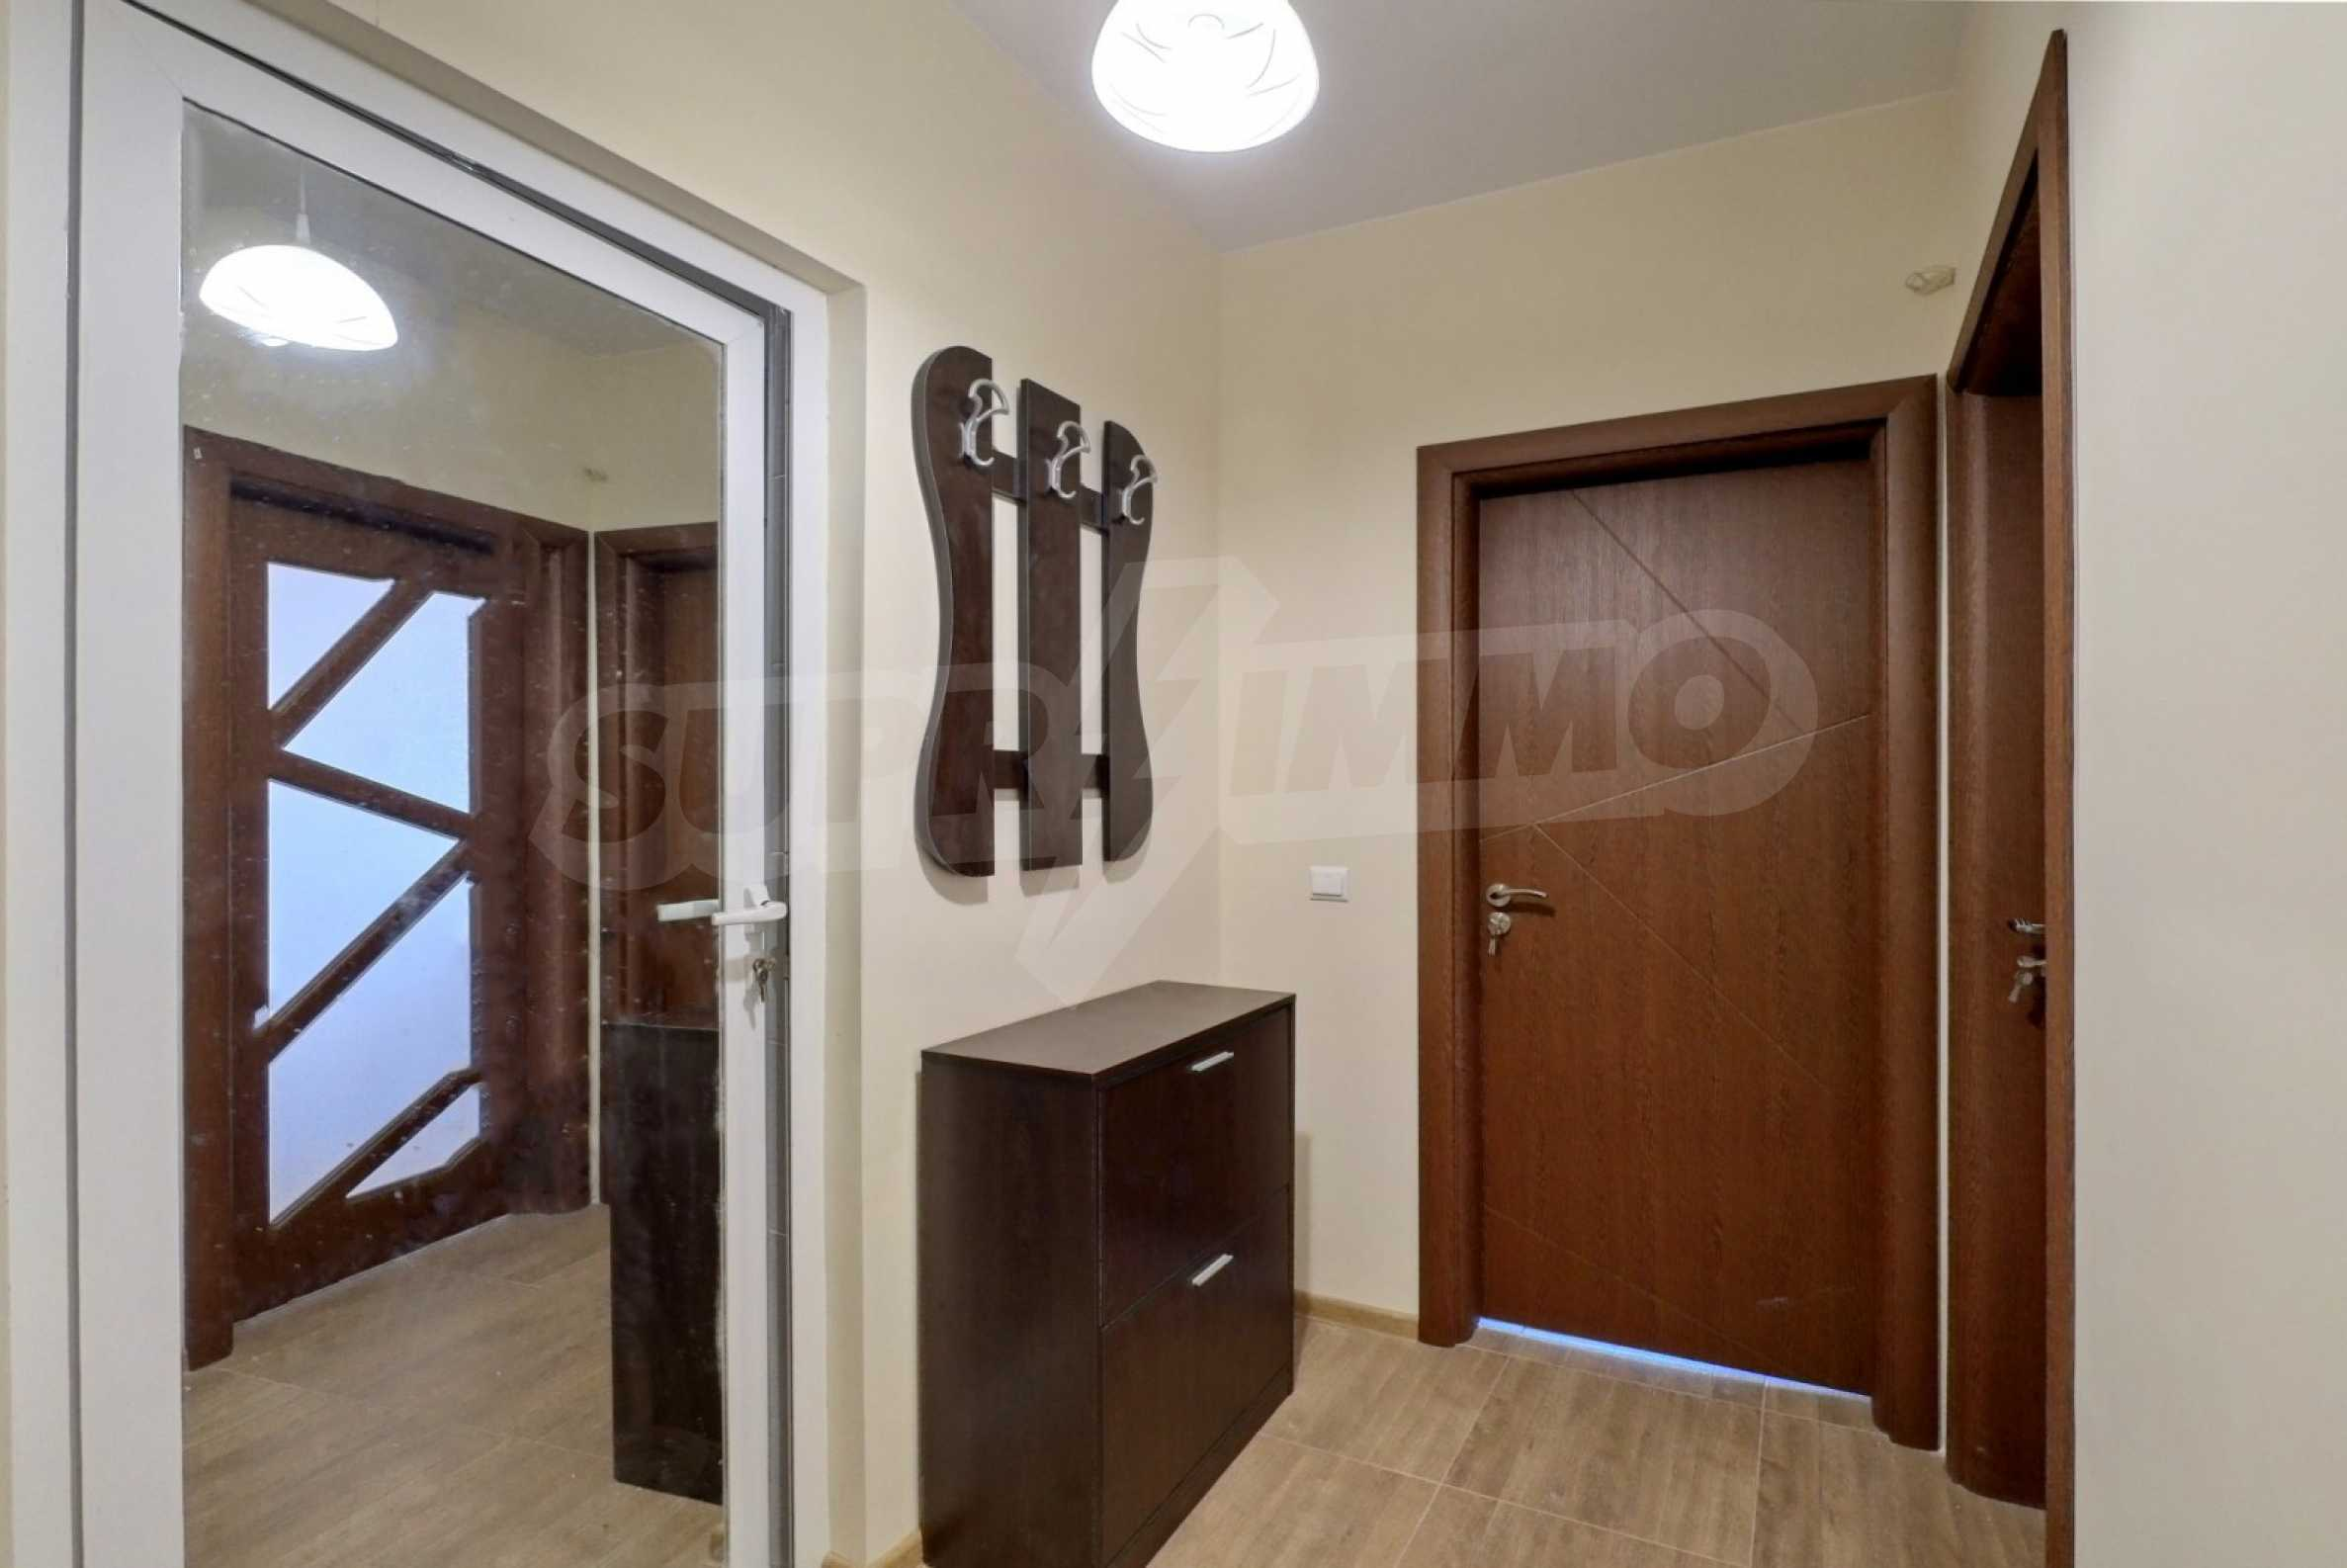 South apartment with underground parking space in Krastova Vada district for rent 9